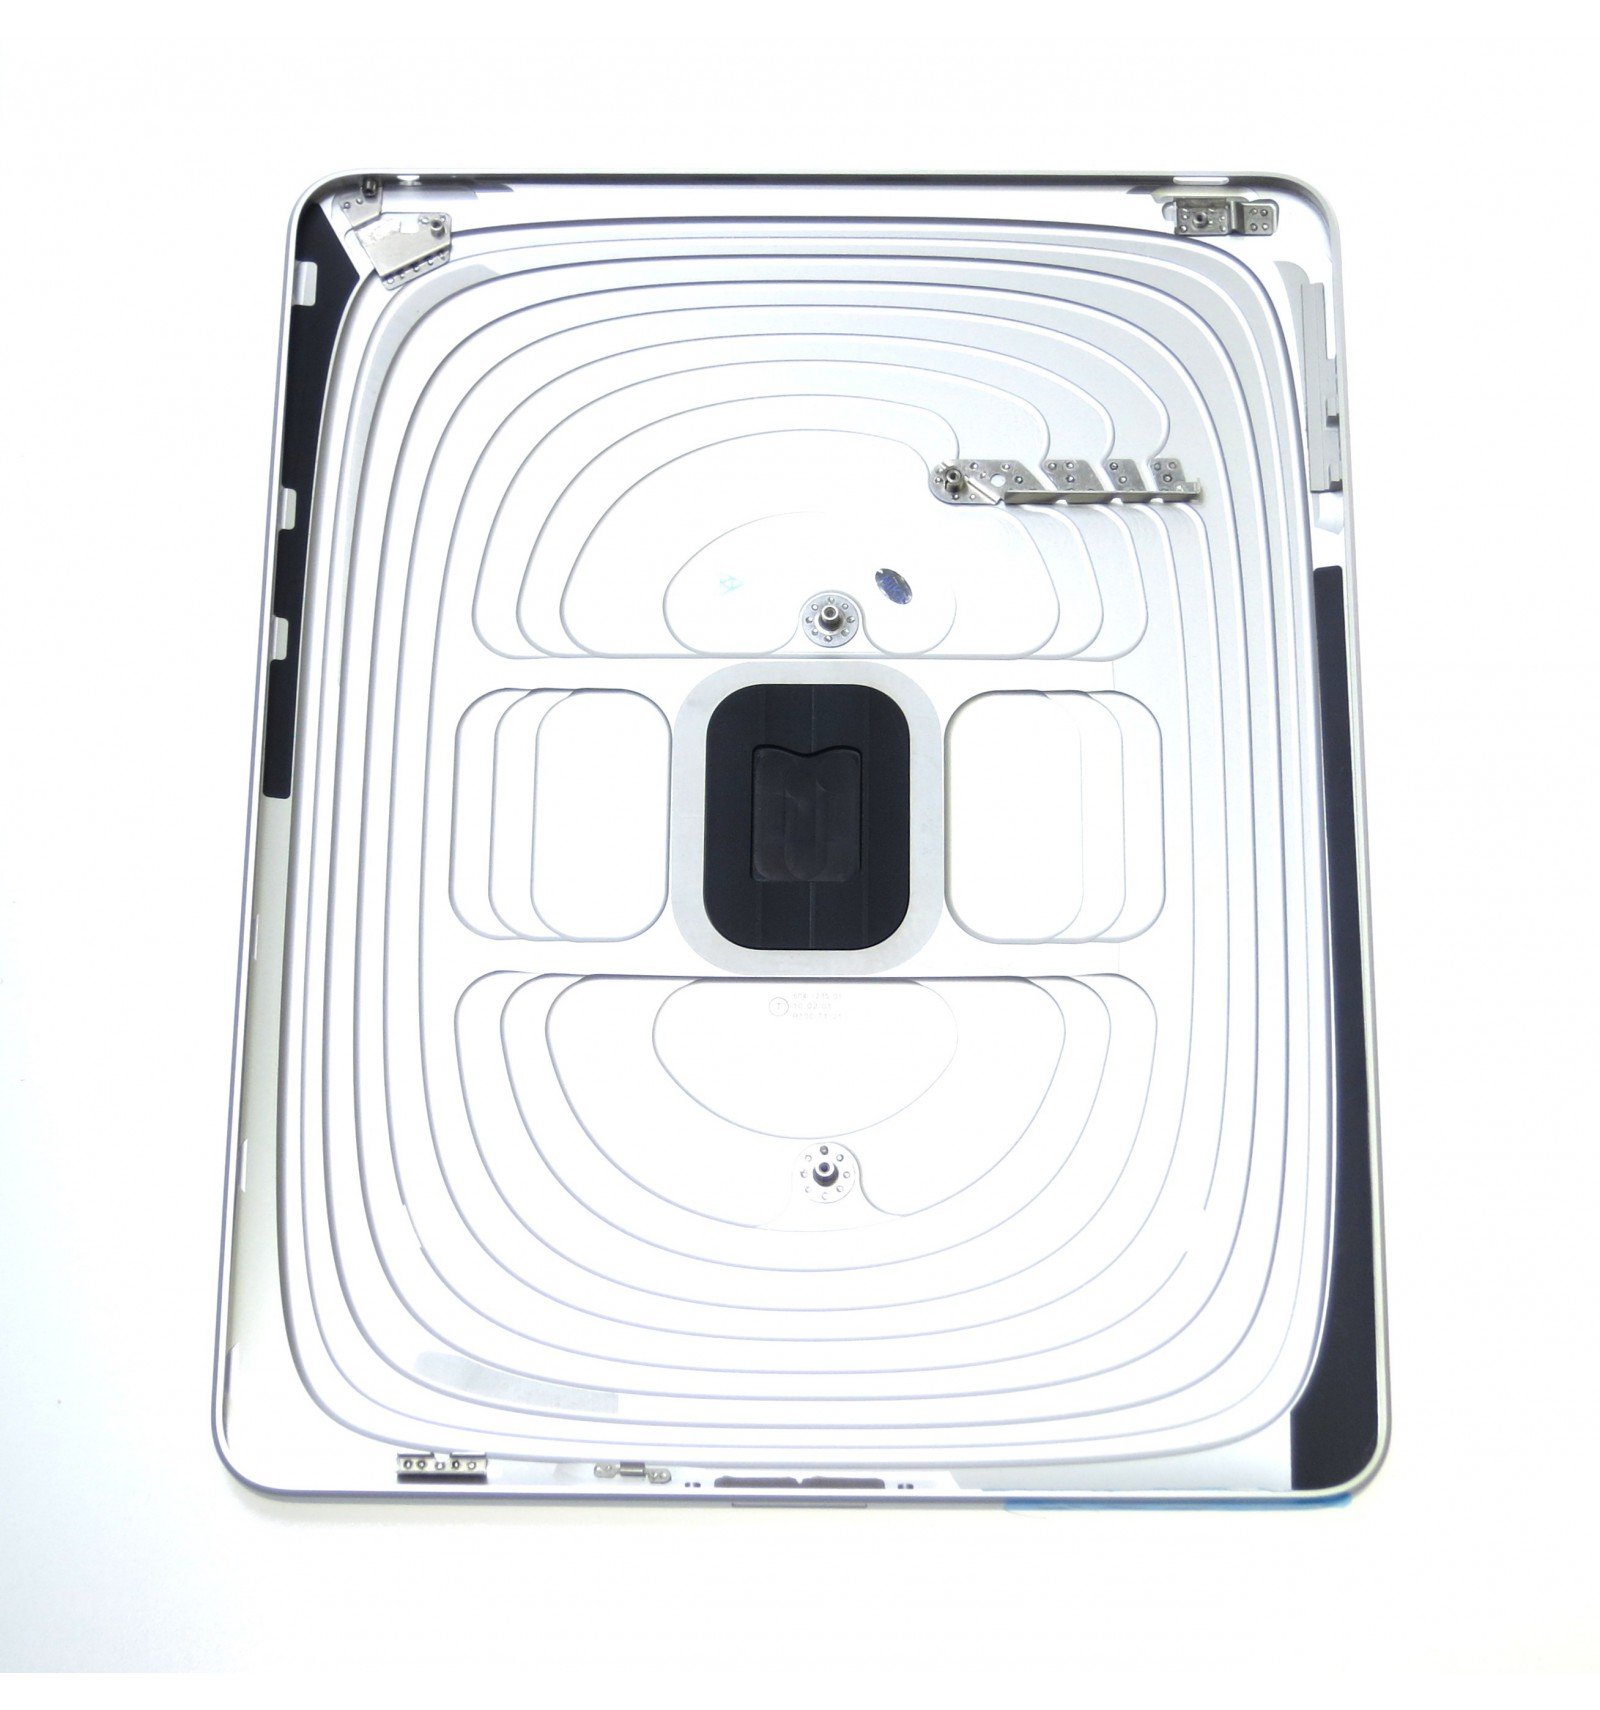 Oops also 103202 Apple Ipad 1 Wi Fi Battery Cover Oem in addition Safety Pad in addition 3 Motor Opel Vectra X20xev Motor Installation besides Free Flourish. on the last of us box cover